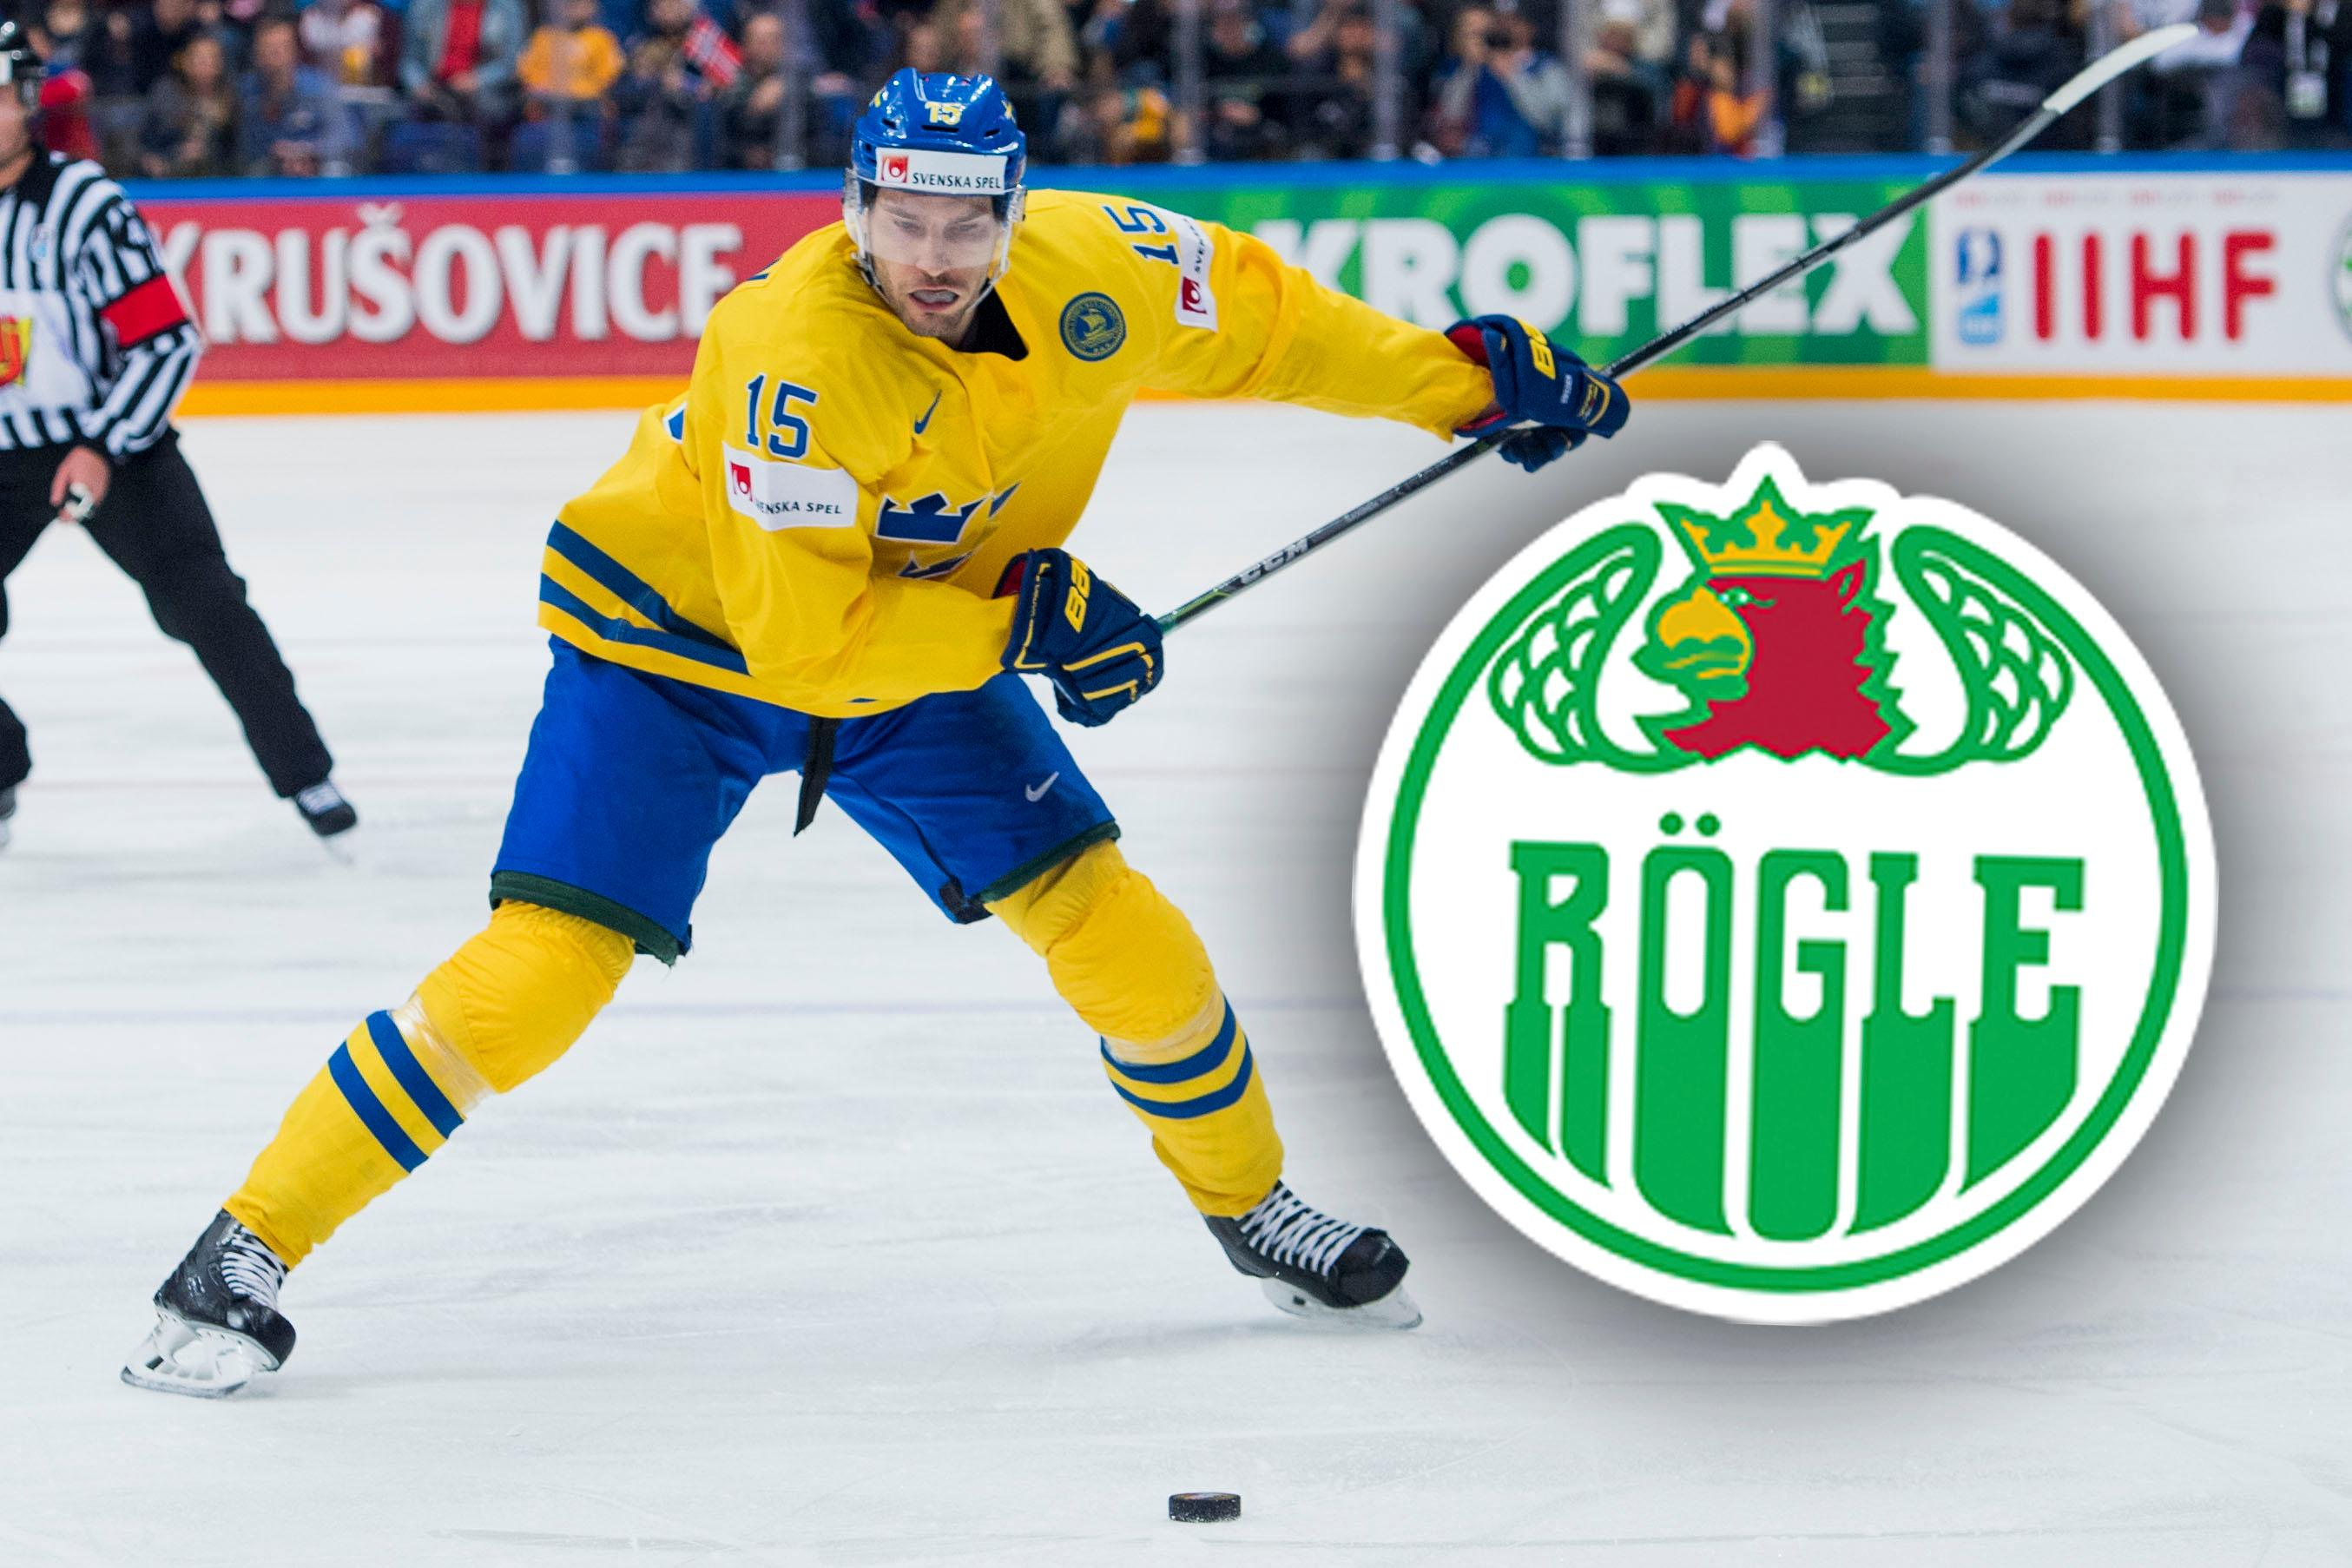 Christian sjogren klar for brynas